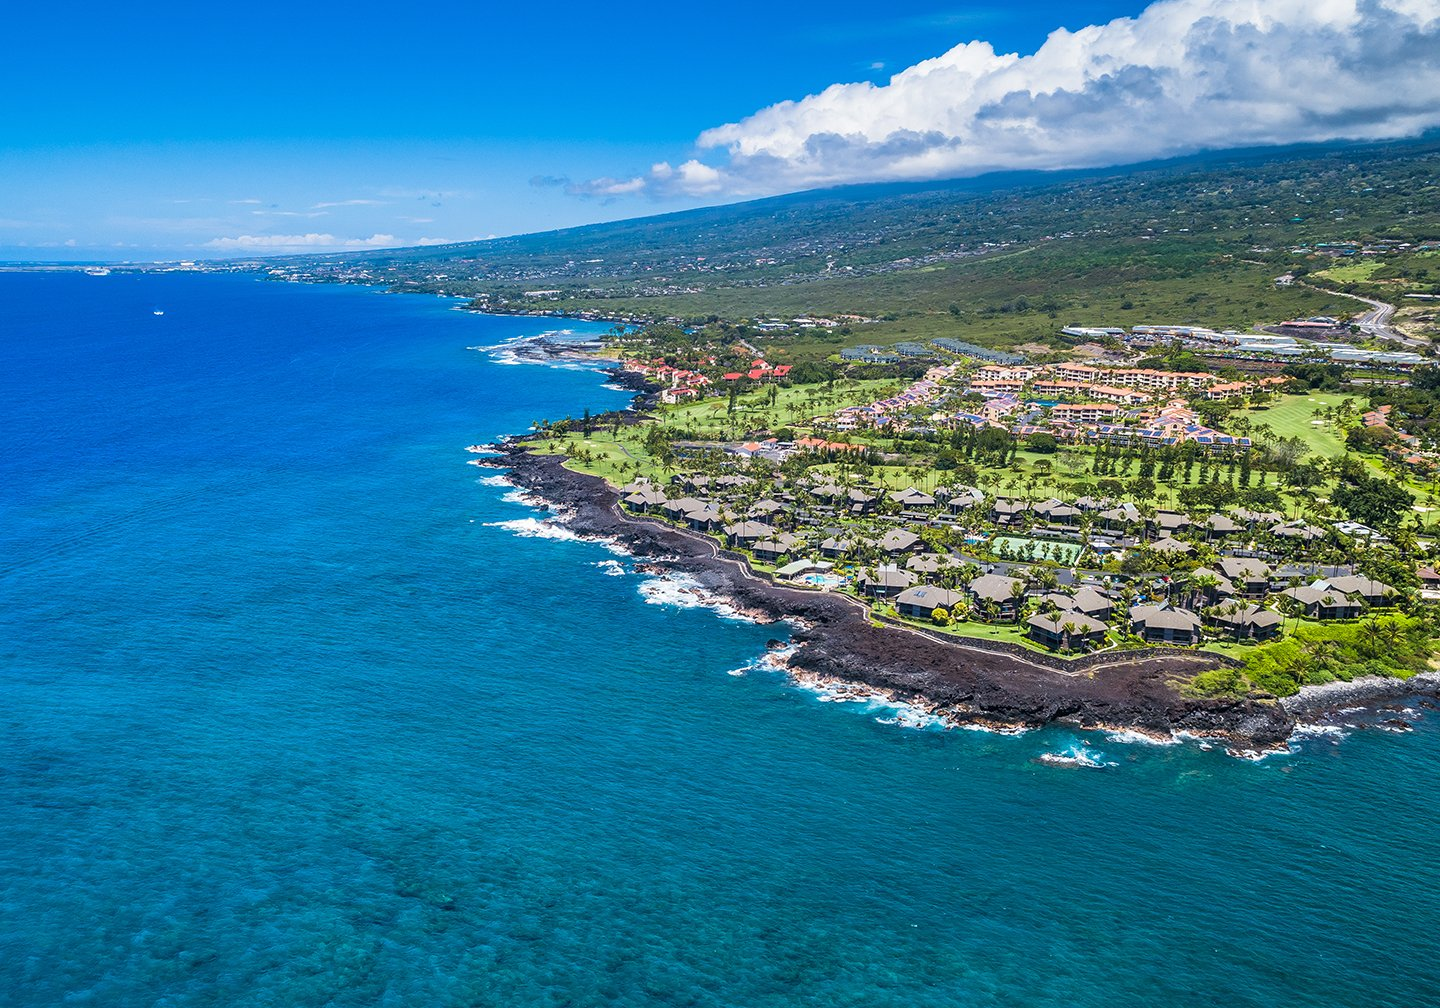 An aerial view of Kailua-Kona, Hawaii, with blue sea to the left and the island to the right